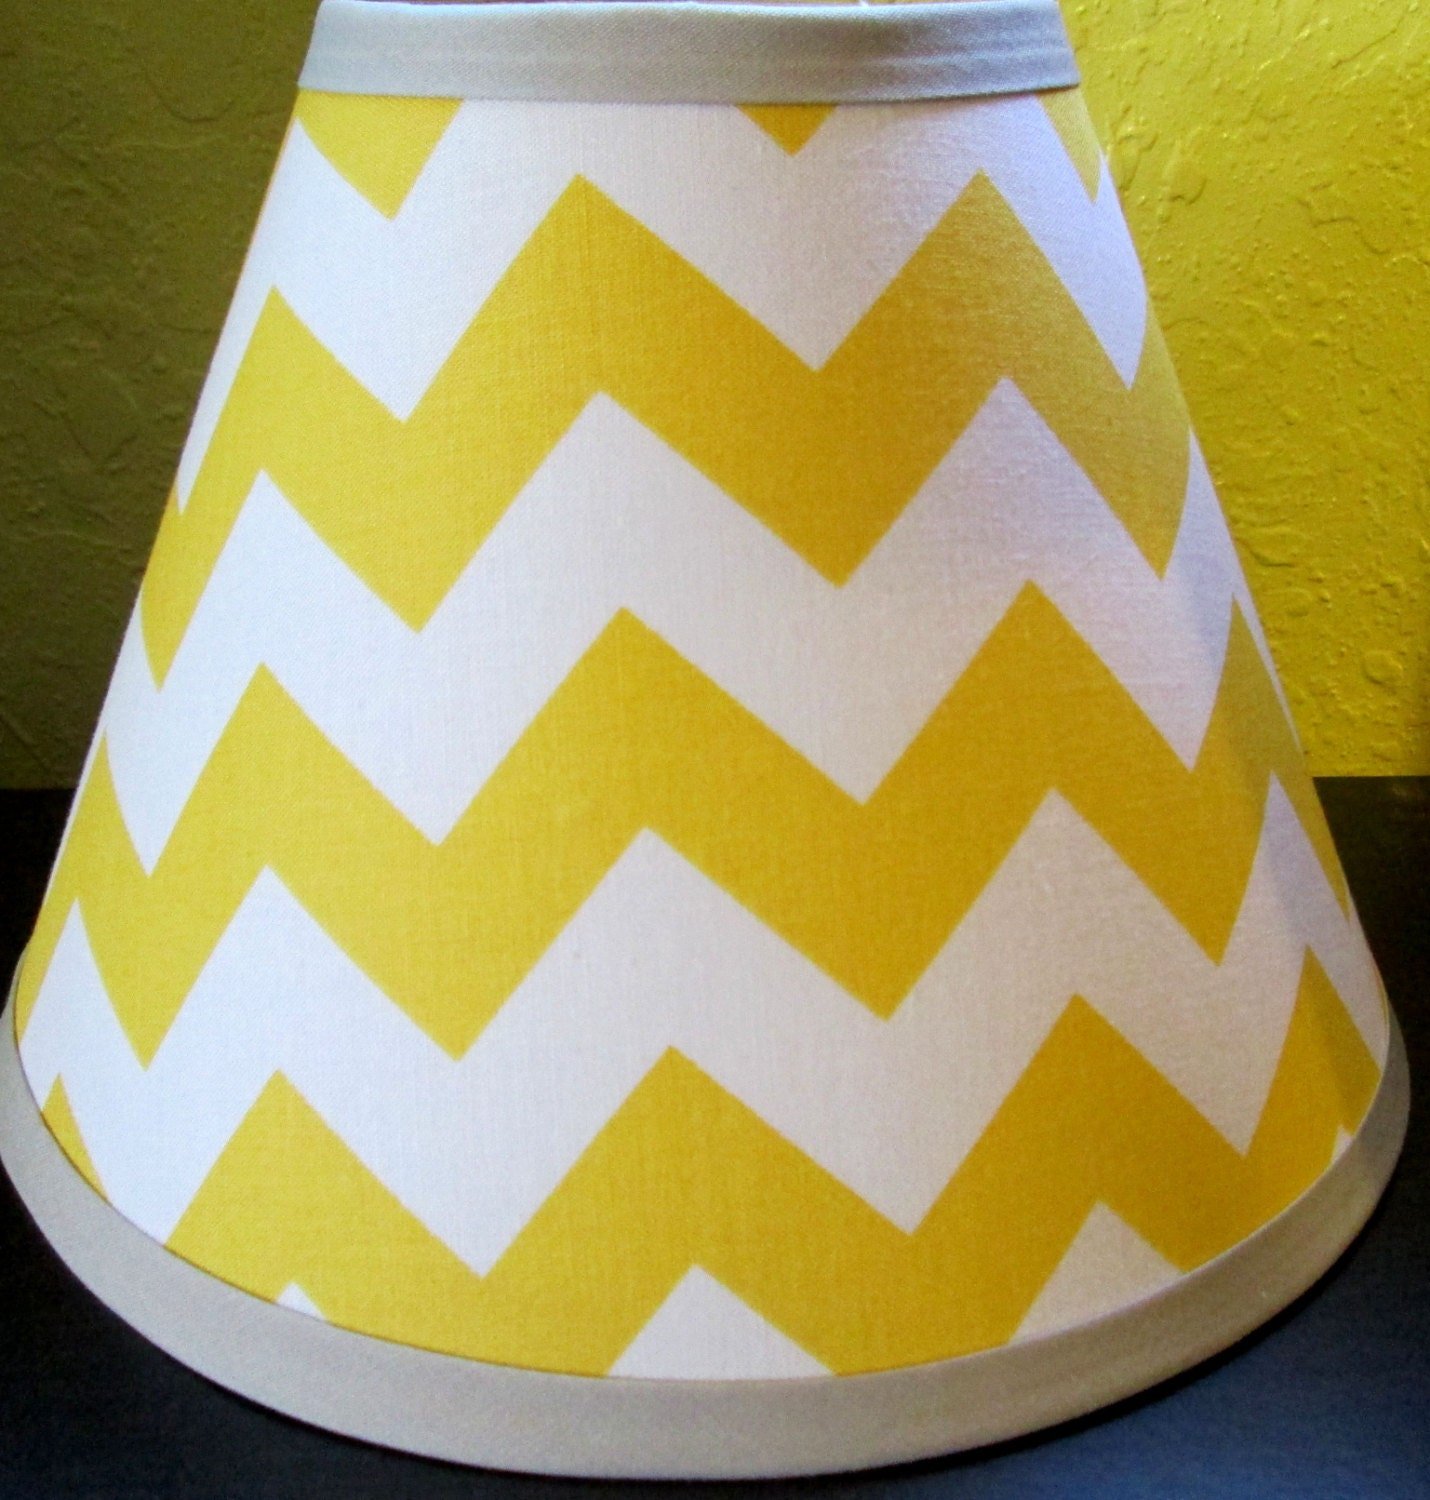 on sale lampshade lamp shade made w yellow and by 3buttonsn2bows. Black Bedroom Furniture Sets. Home Design Ideas